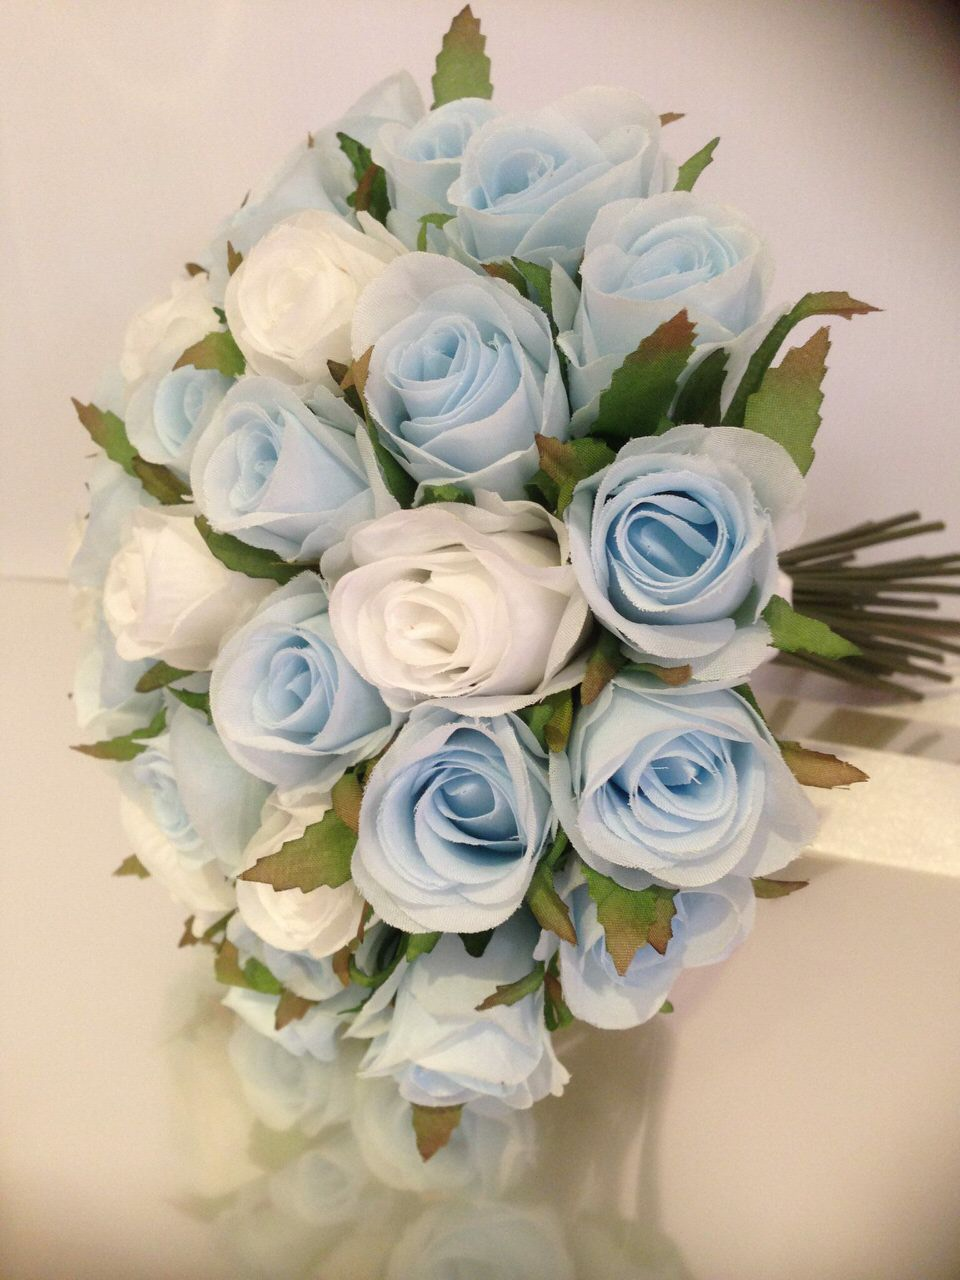 Light Blue White Roses Posy 33 Buds Wedding Bouquet Artificial Silk Flower Petals N Pods Bridal